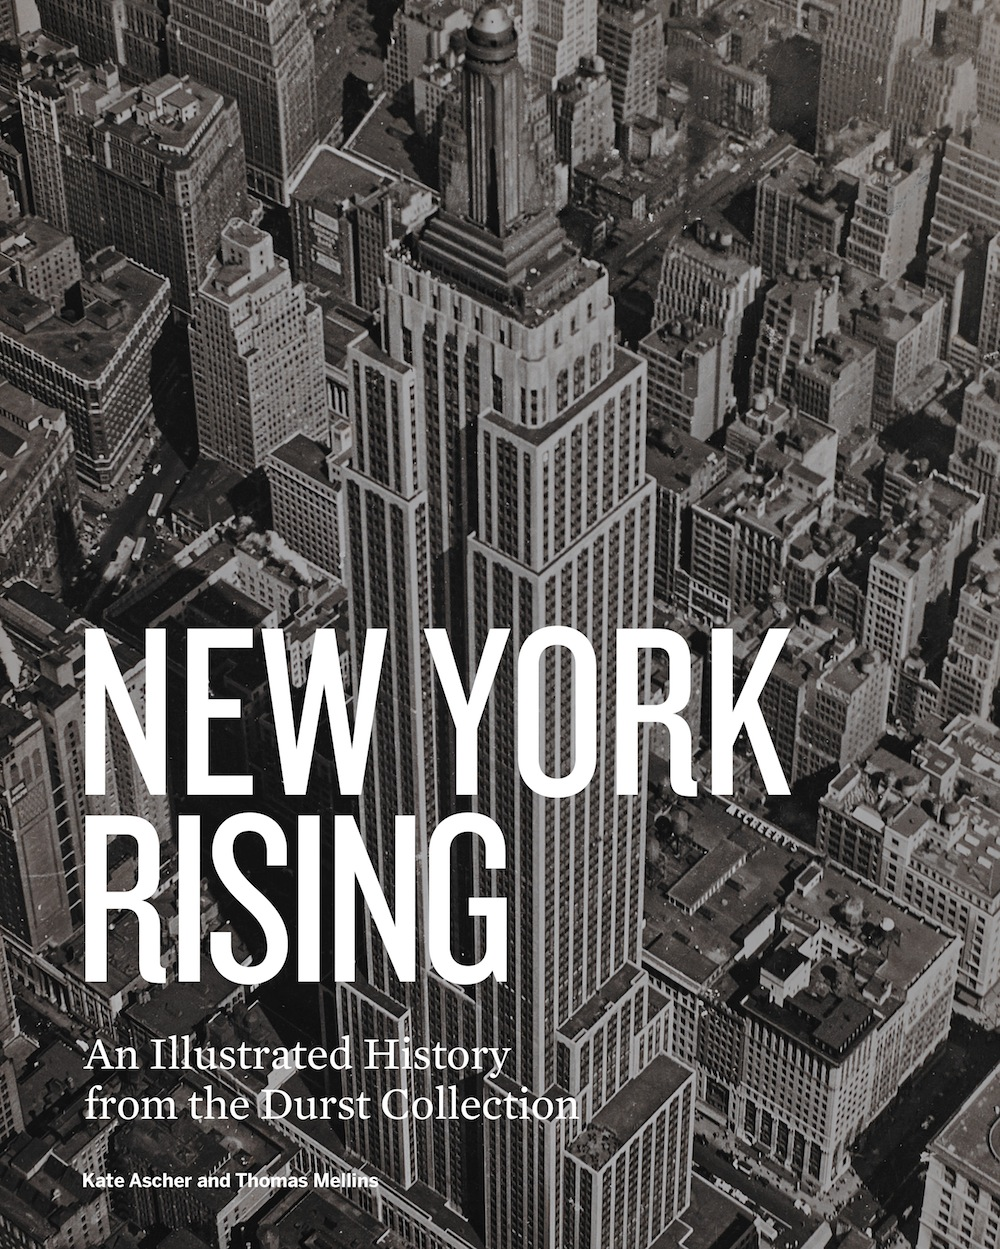 new york rising, durst collection, avery collection, old york library, seymore durst